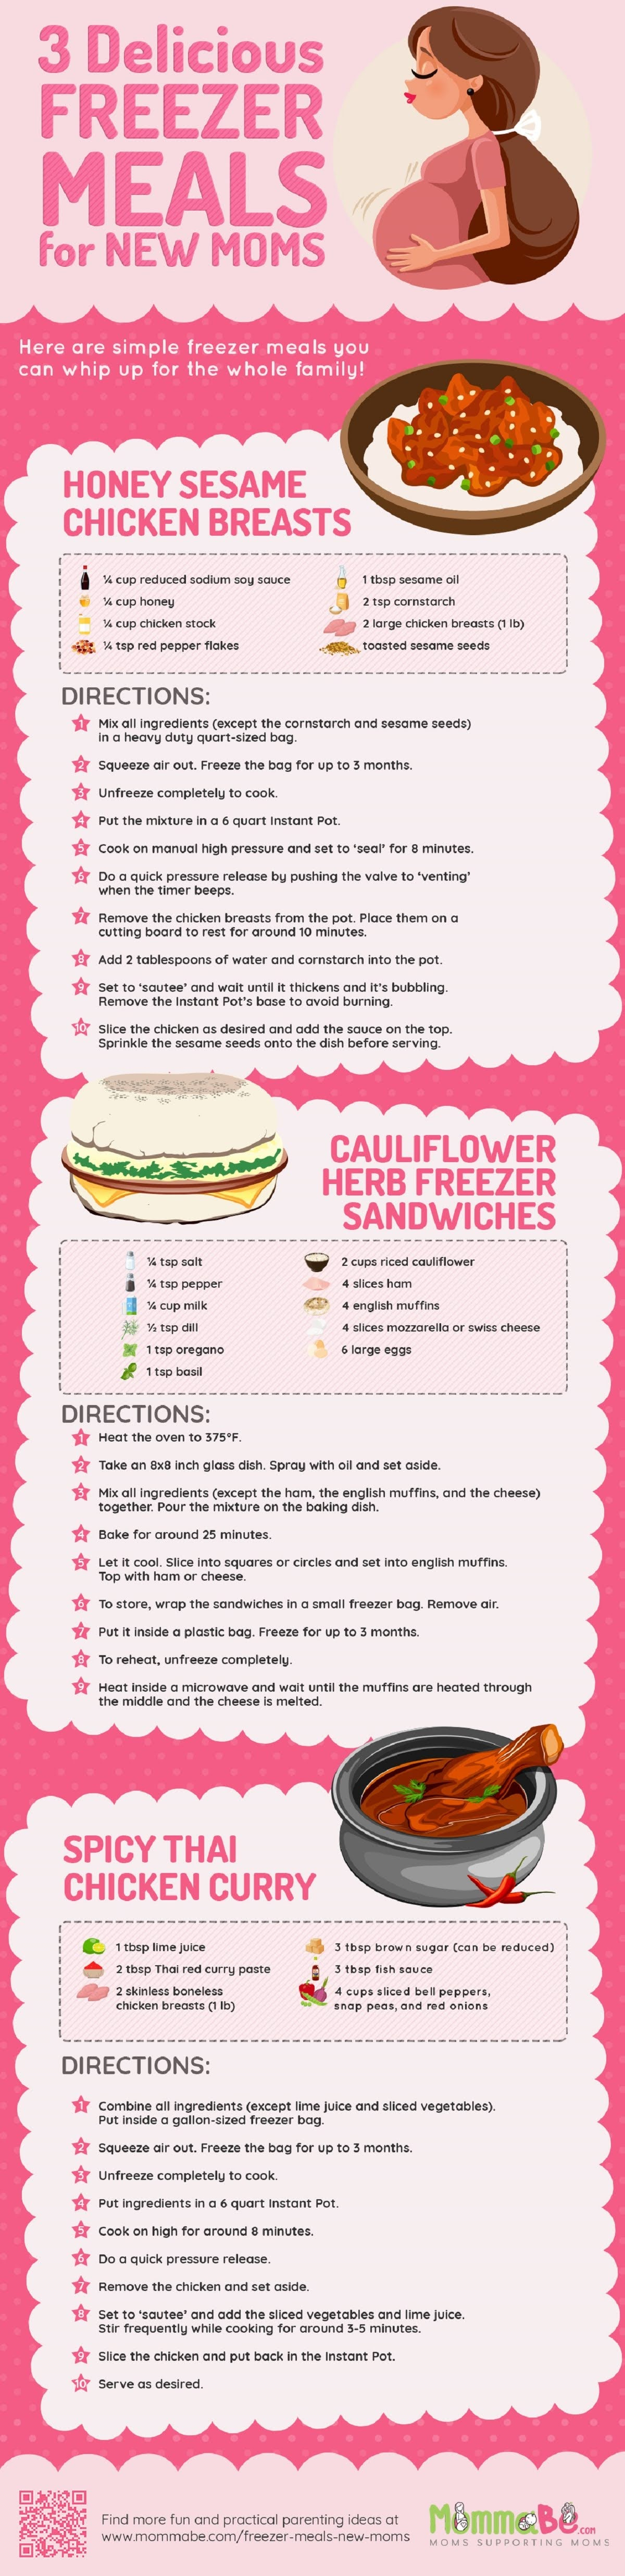 13-healthy-freezer-meals-for-new-moms-infographic